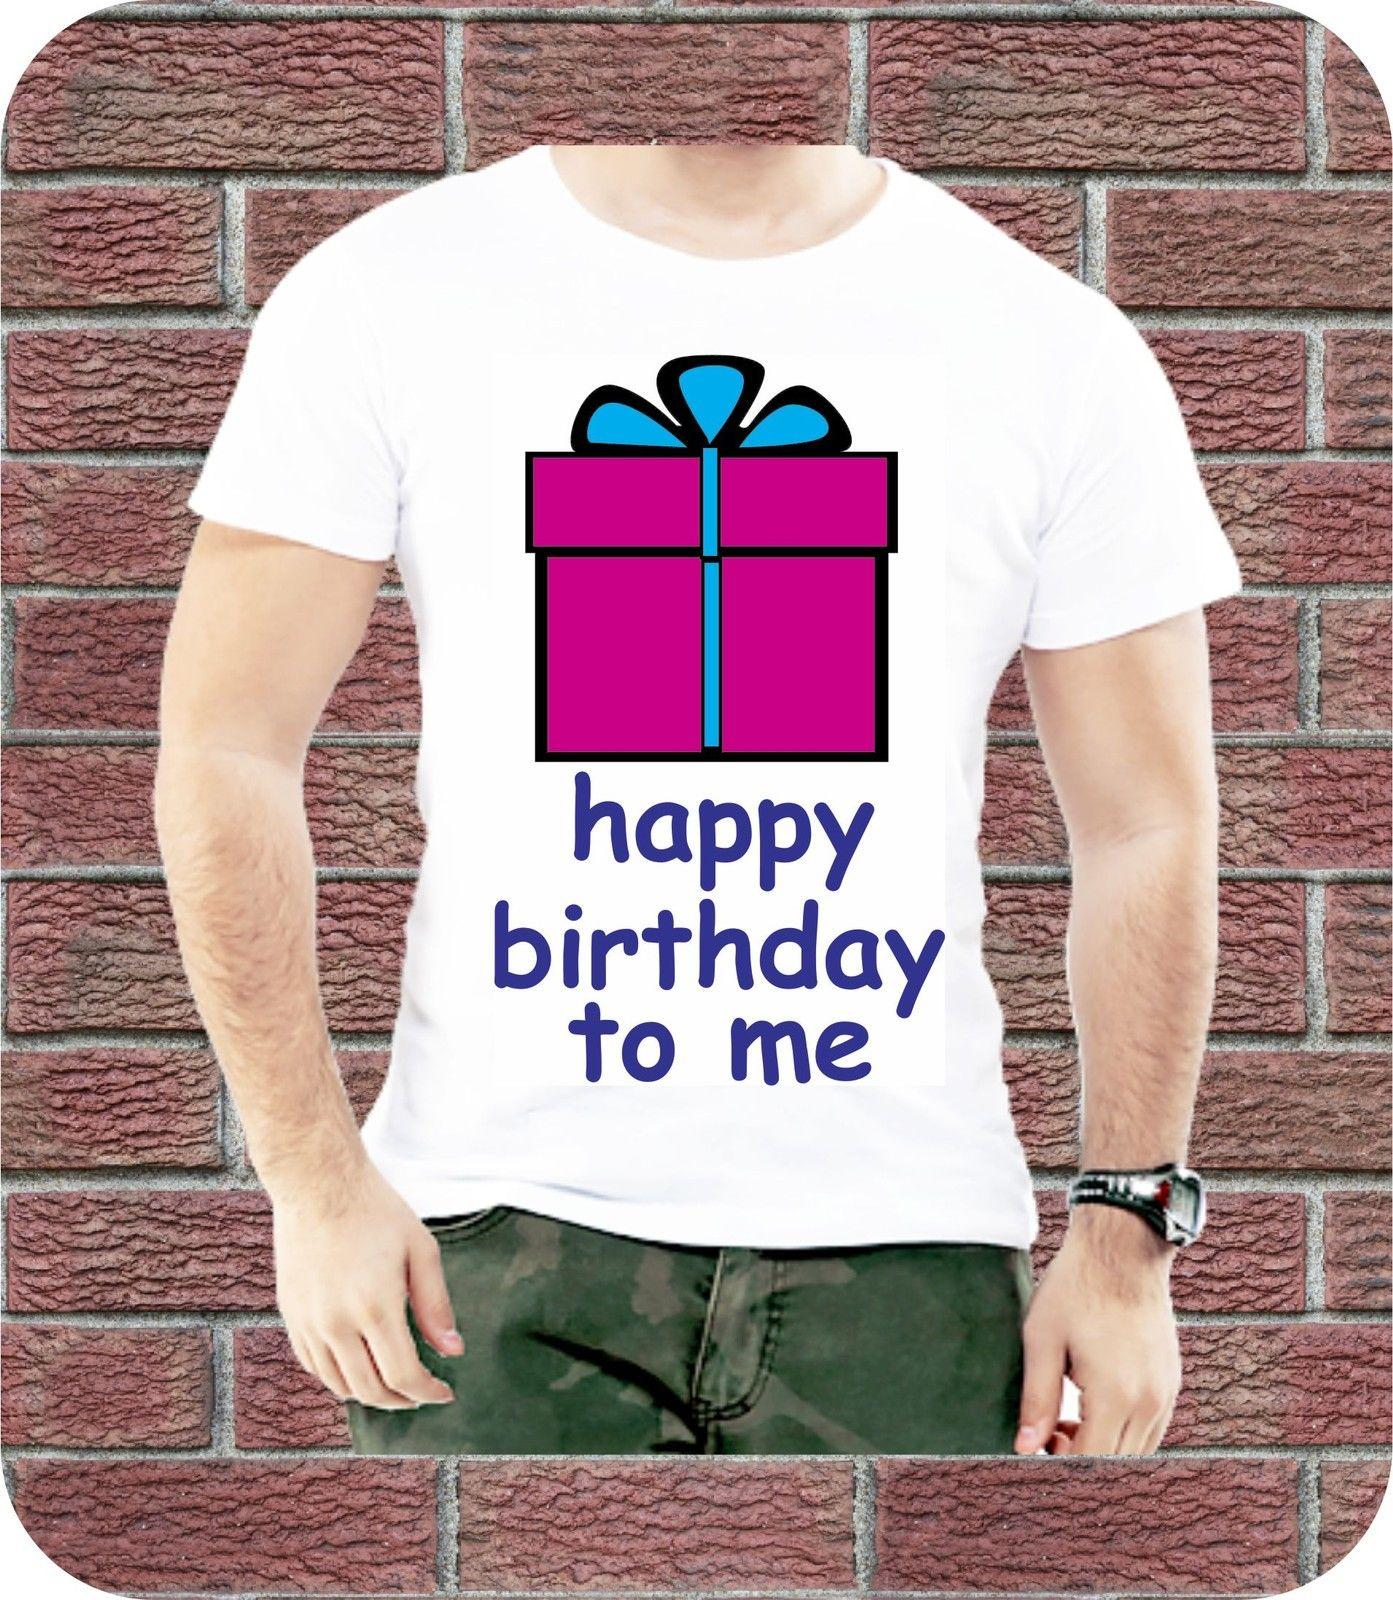 HAPPY BIRTHDAY TO ME GIFT PRESENT PICTURE MEN SIZE T SHIRT SUMMER Cool Casual Pride Shirt Men Unisex New Fashion Designer From Cls6688521